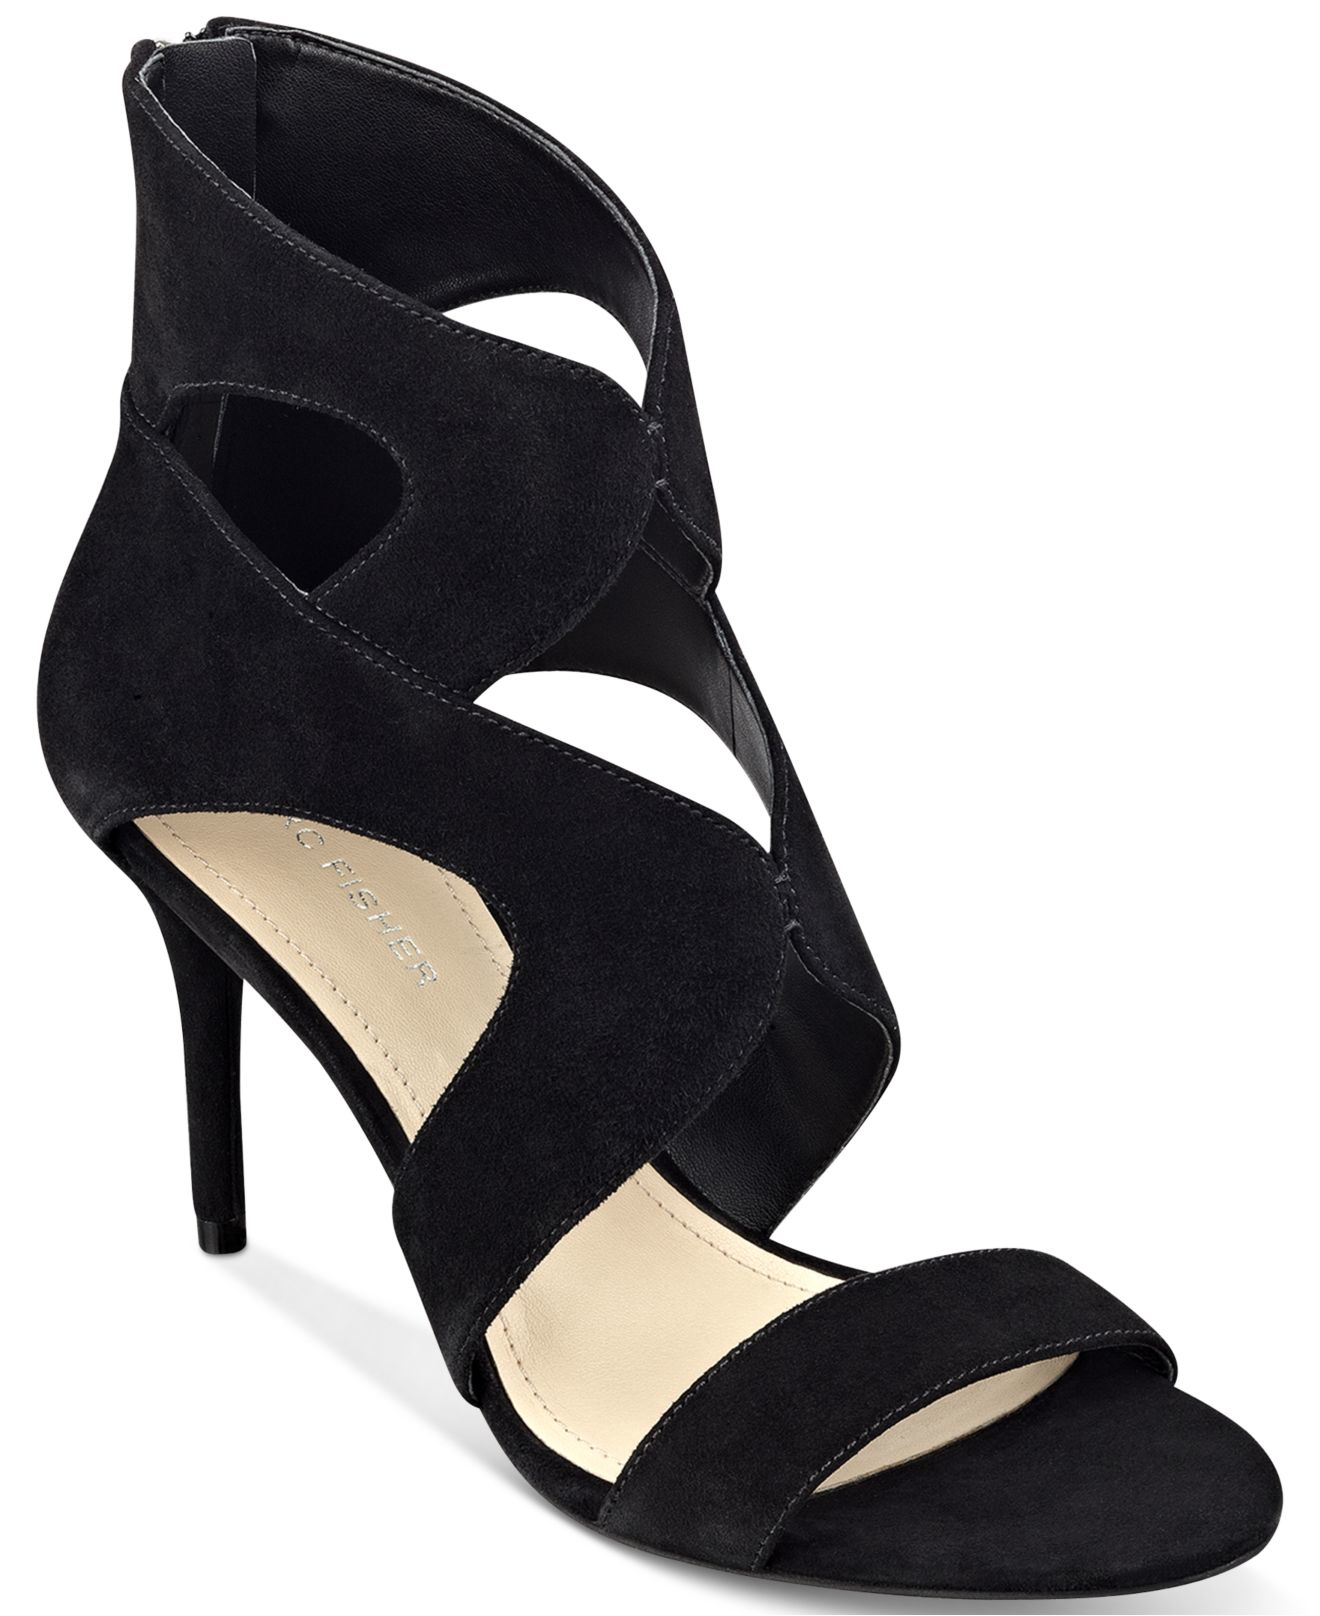 Marc fisher Brittany Dress Sandals in Black - Lyst